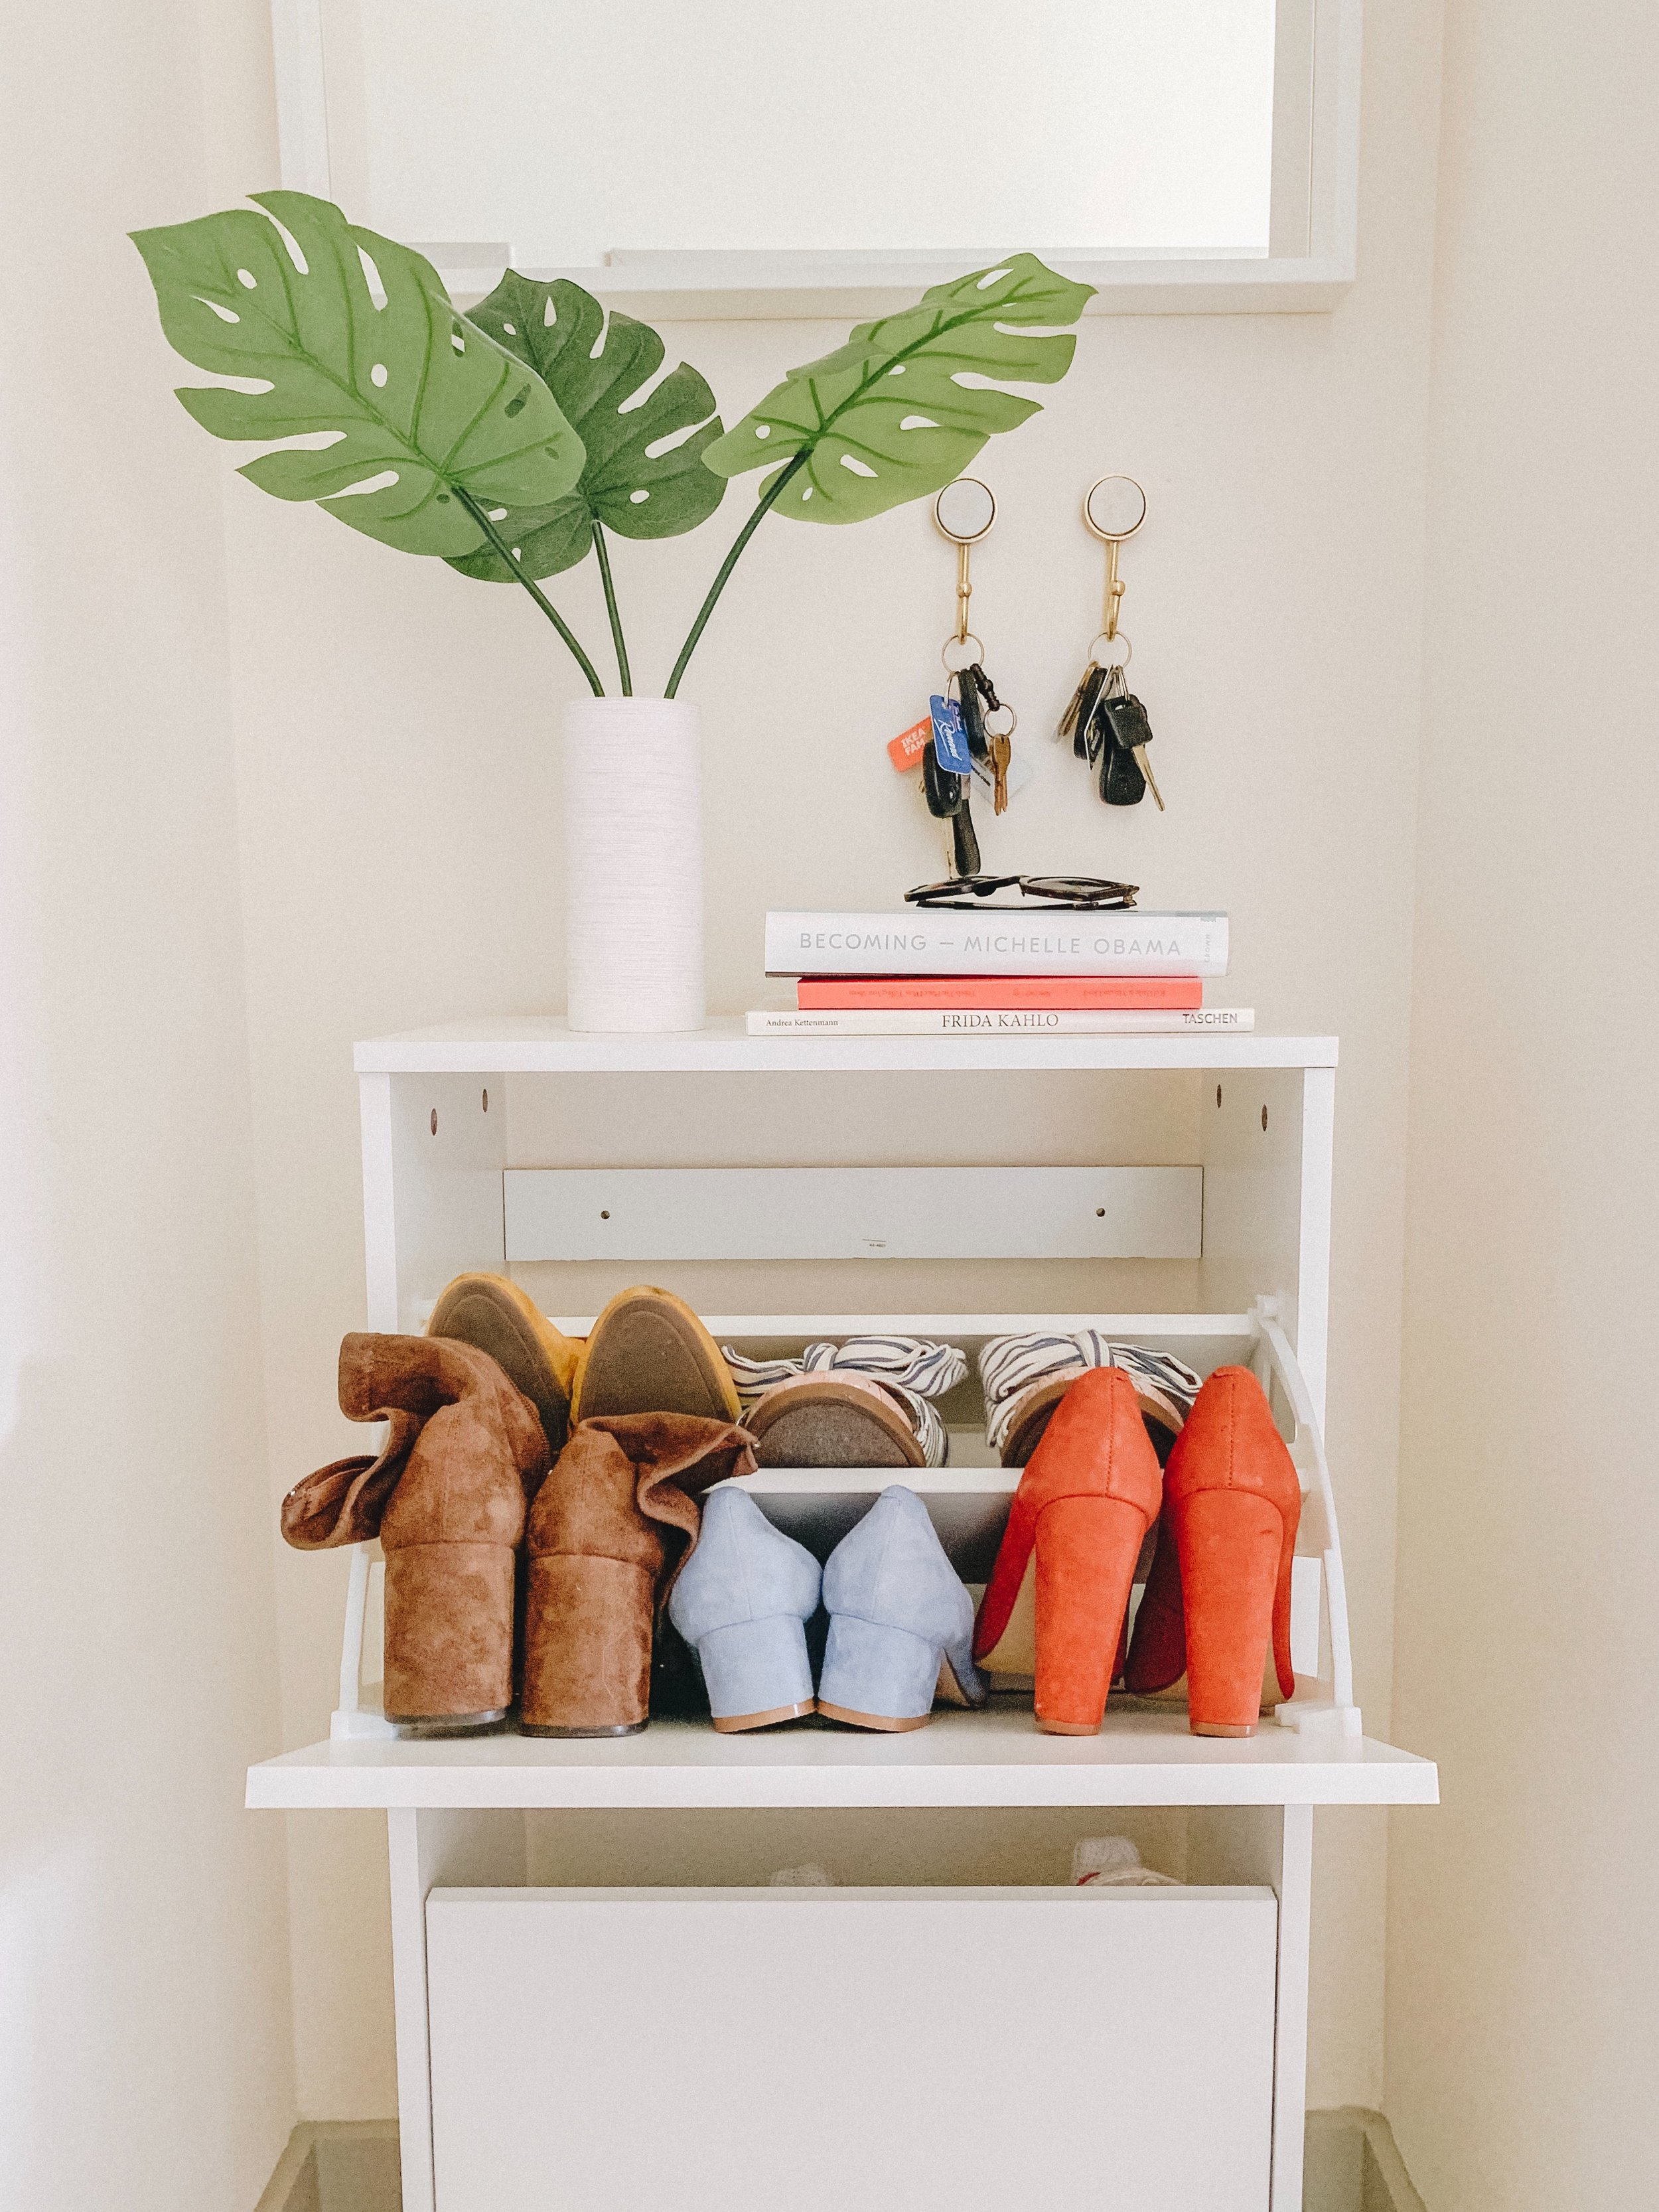 How to Organize Entryway Space | After